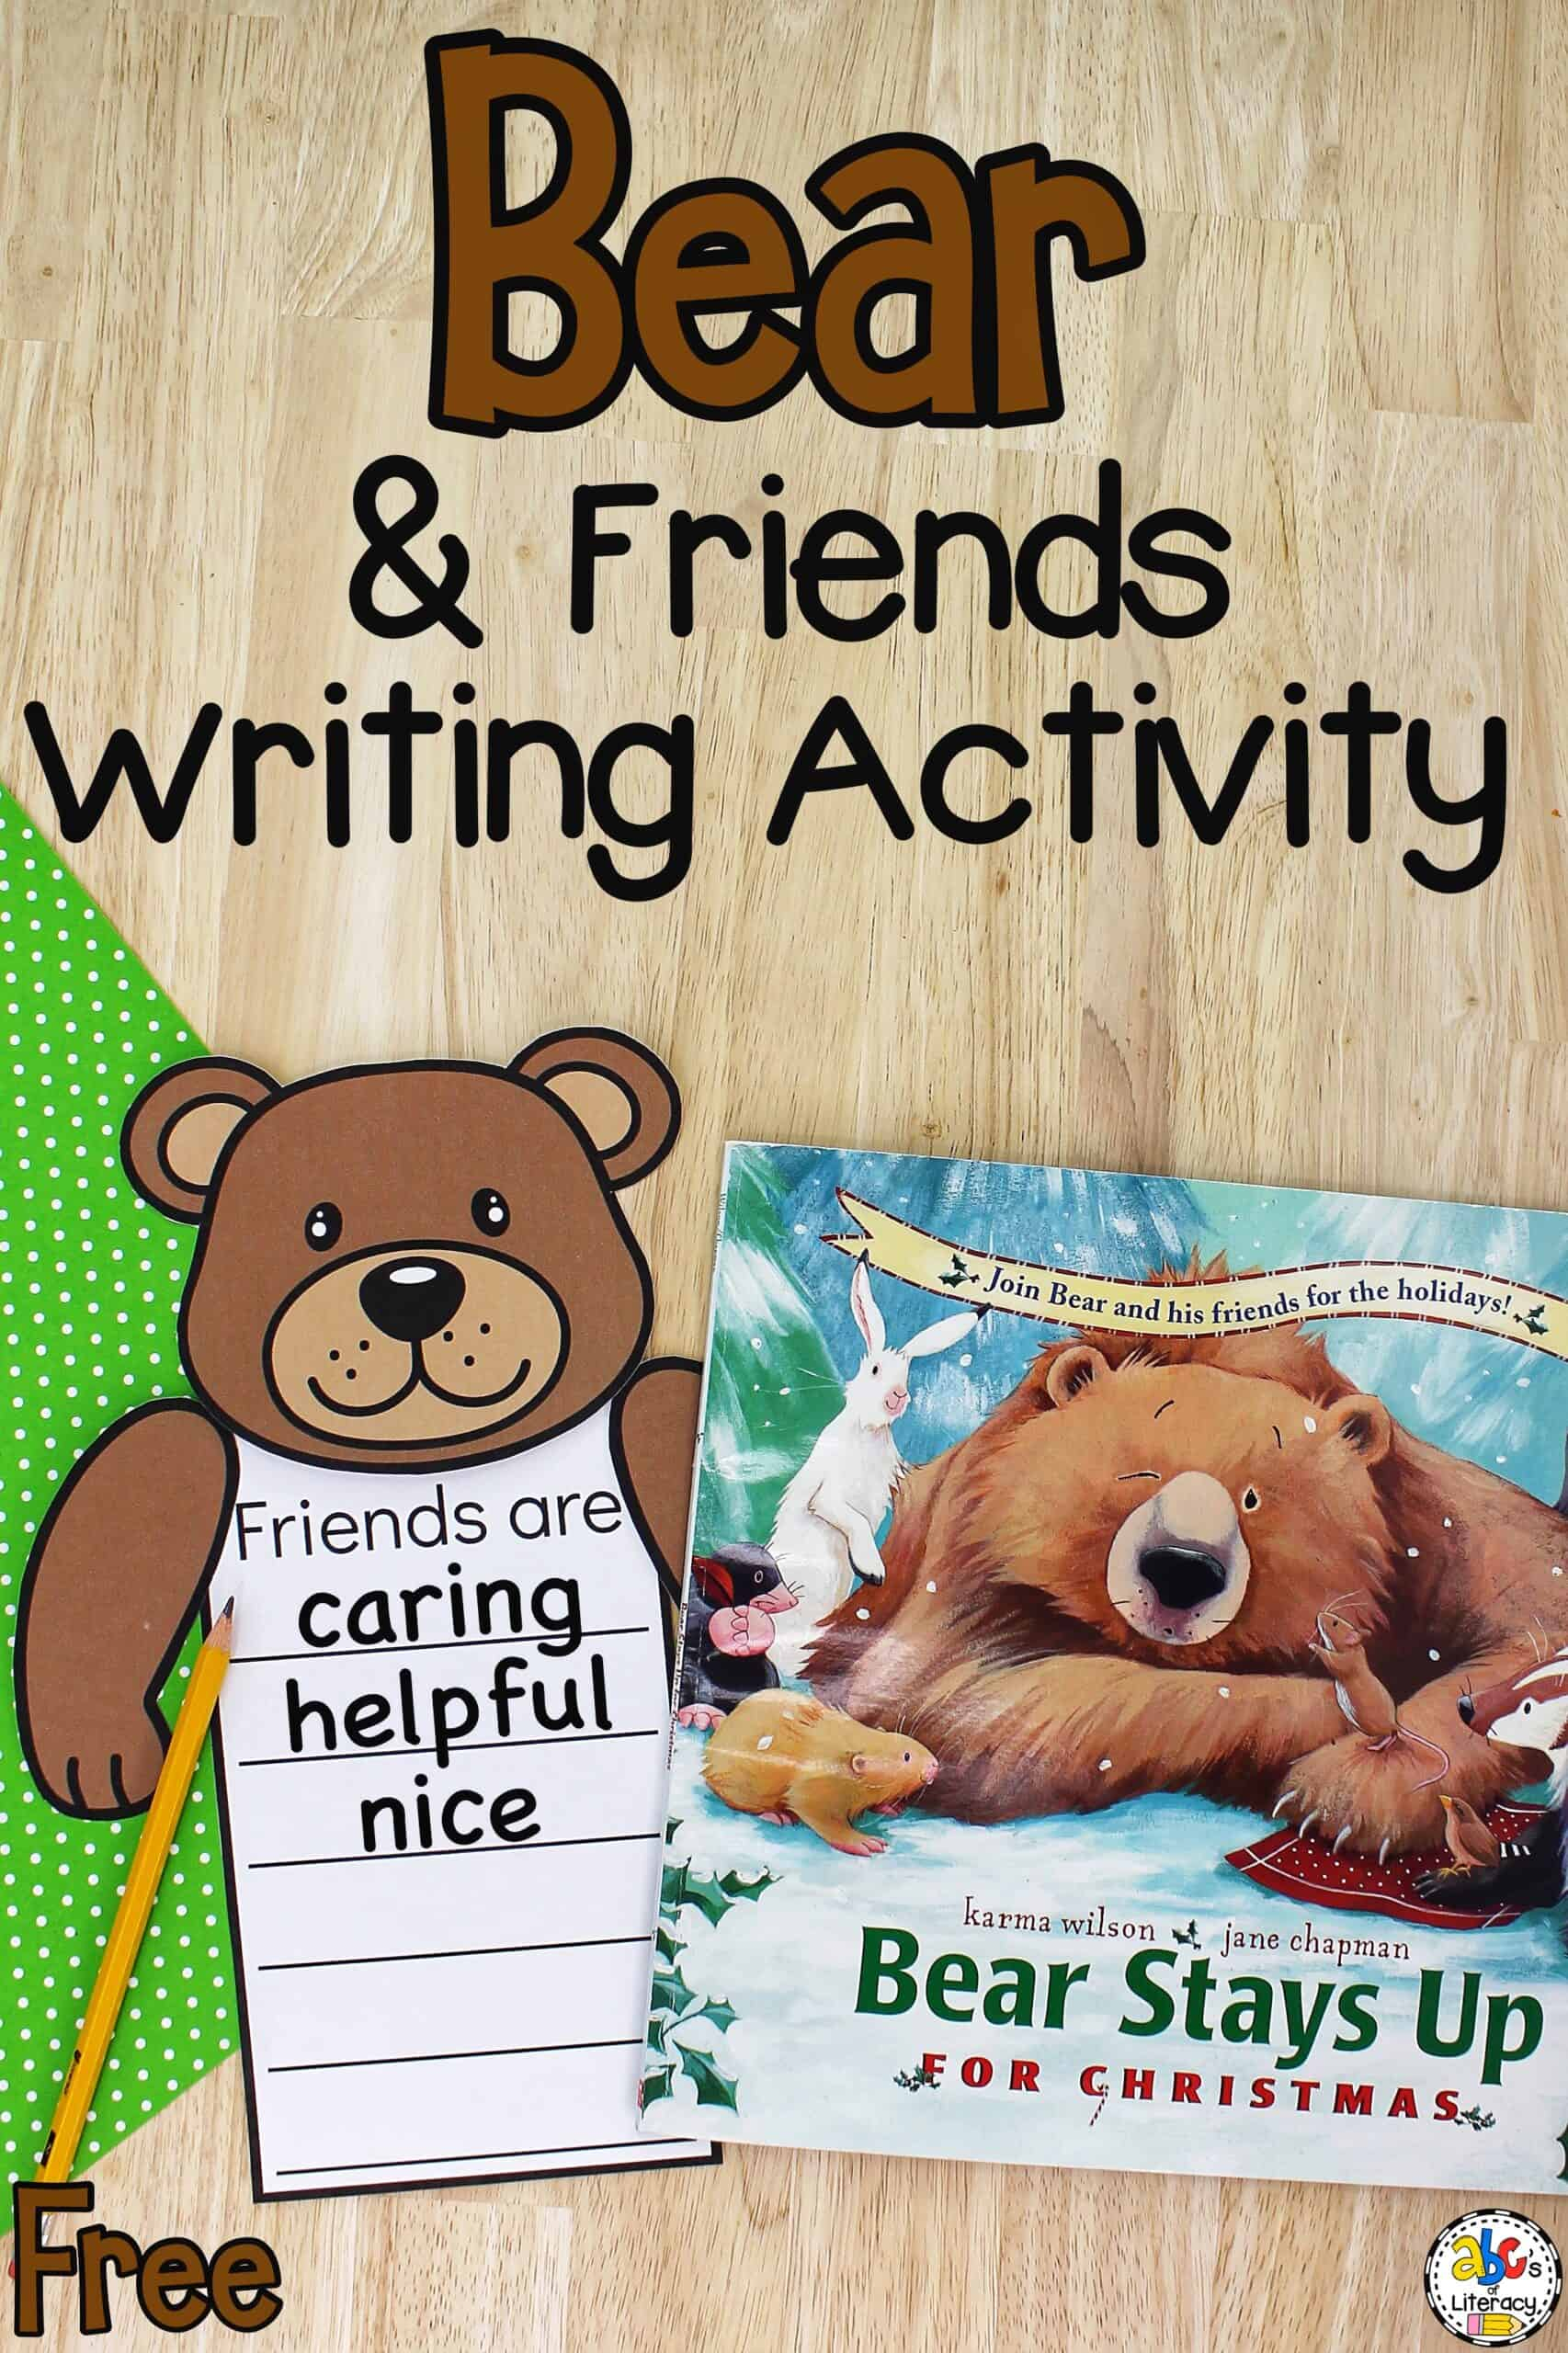 Book-Inspired Activity